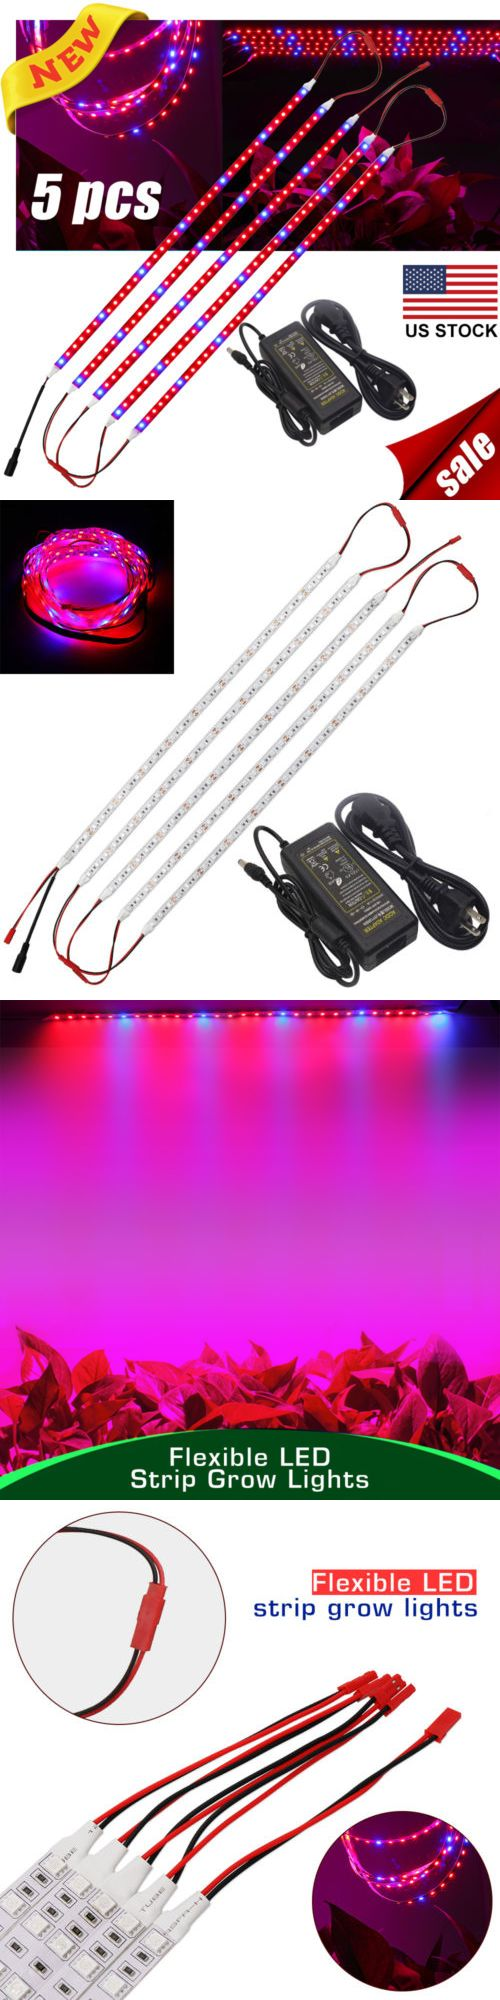 Grow Light Kits 178989 5x Led Grow Light Strip Lamp Smd 5050 Dc 12v Full Spectrum For Plants Veg Flower Bu Led Grow Lights Grow Lights Led Grow Light Bulbs